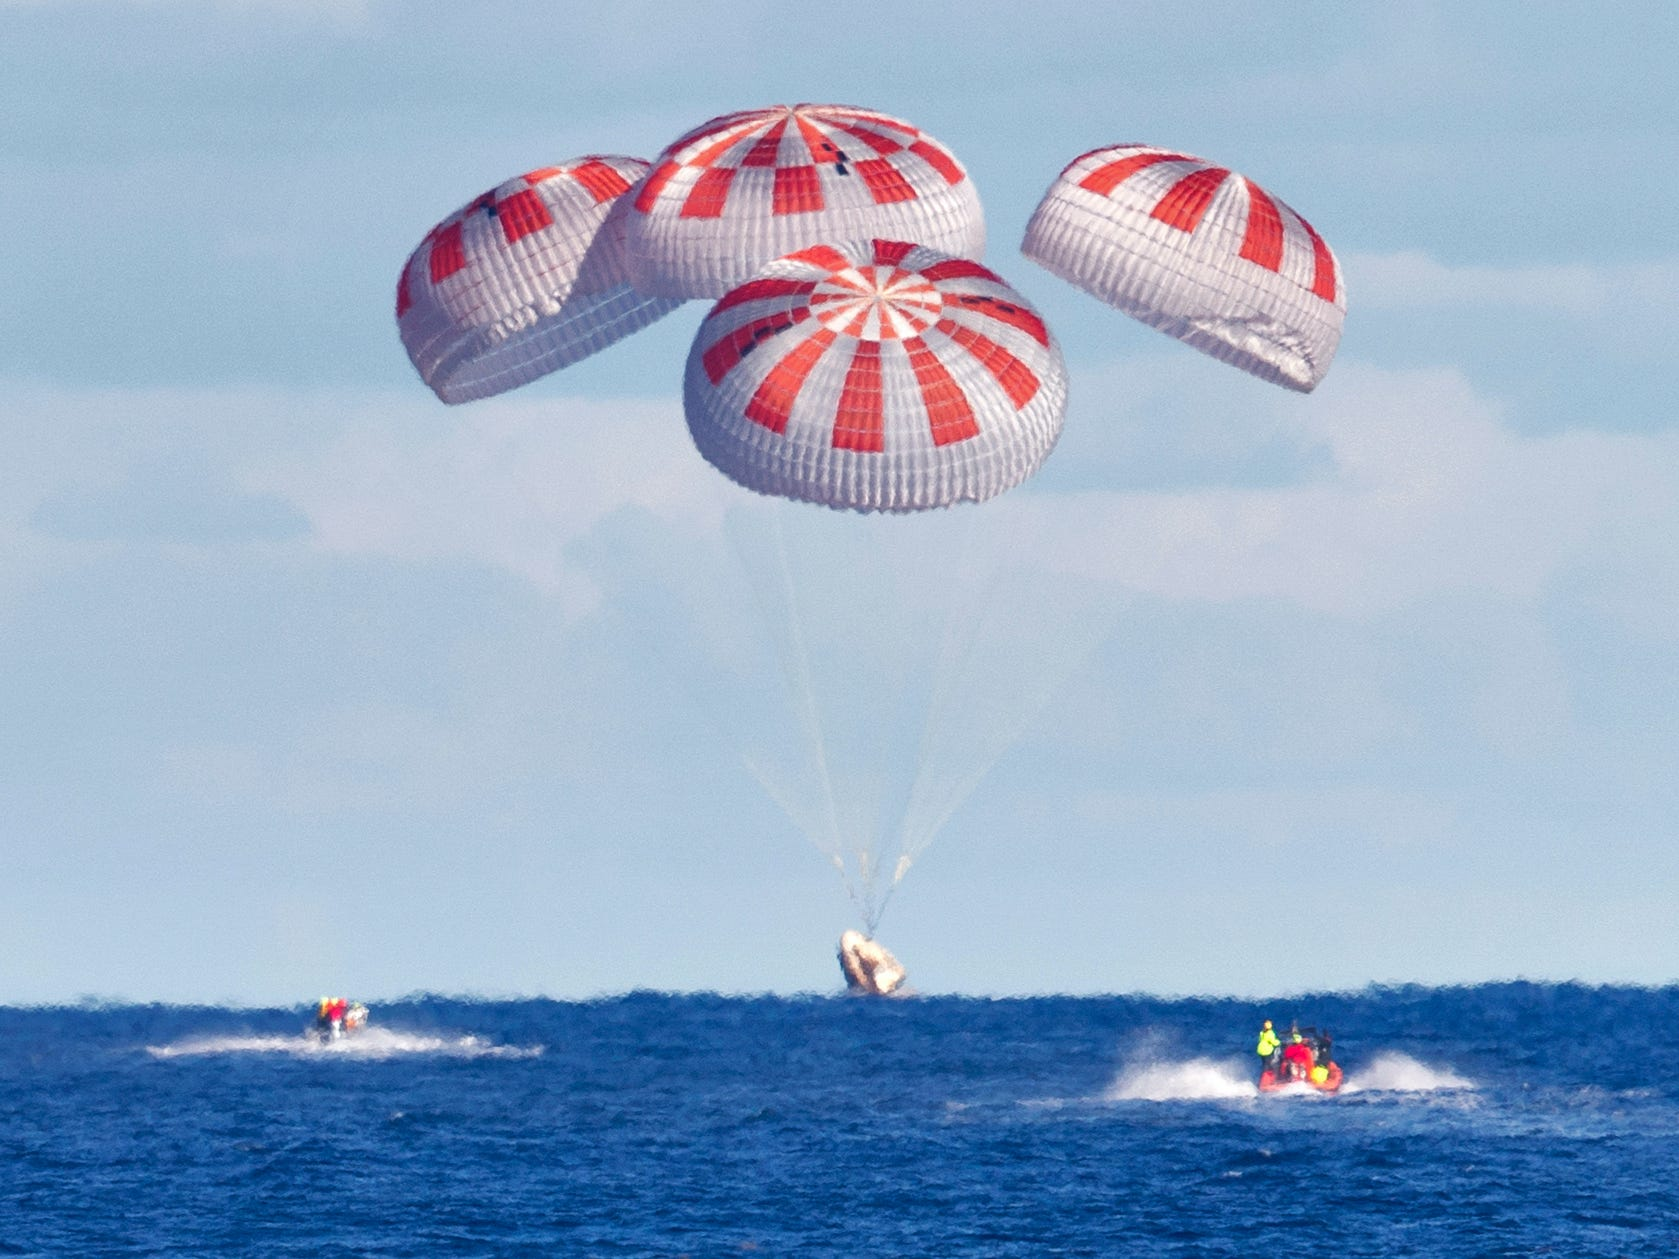 Space X Crew Dragon Spaceship Demo 1 Demo 1 Parachutes Splash Down Atlantic Ocean Cape Canaveral Florida NASA KSC 20190308 PH_CSH01_0192_orig